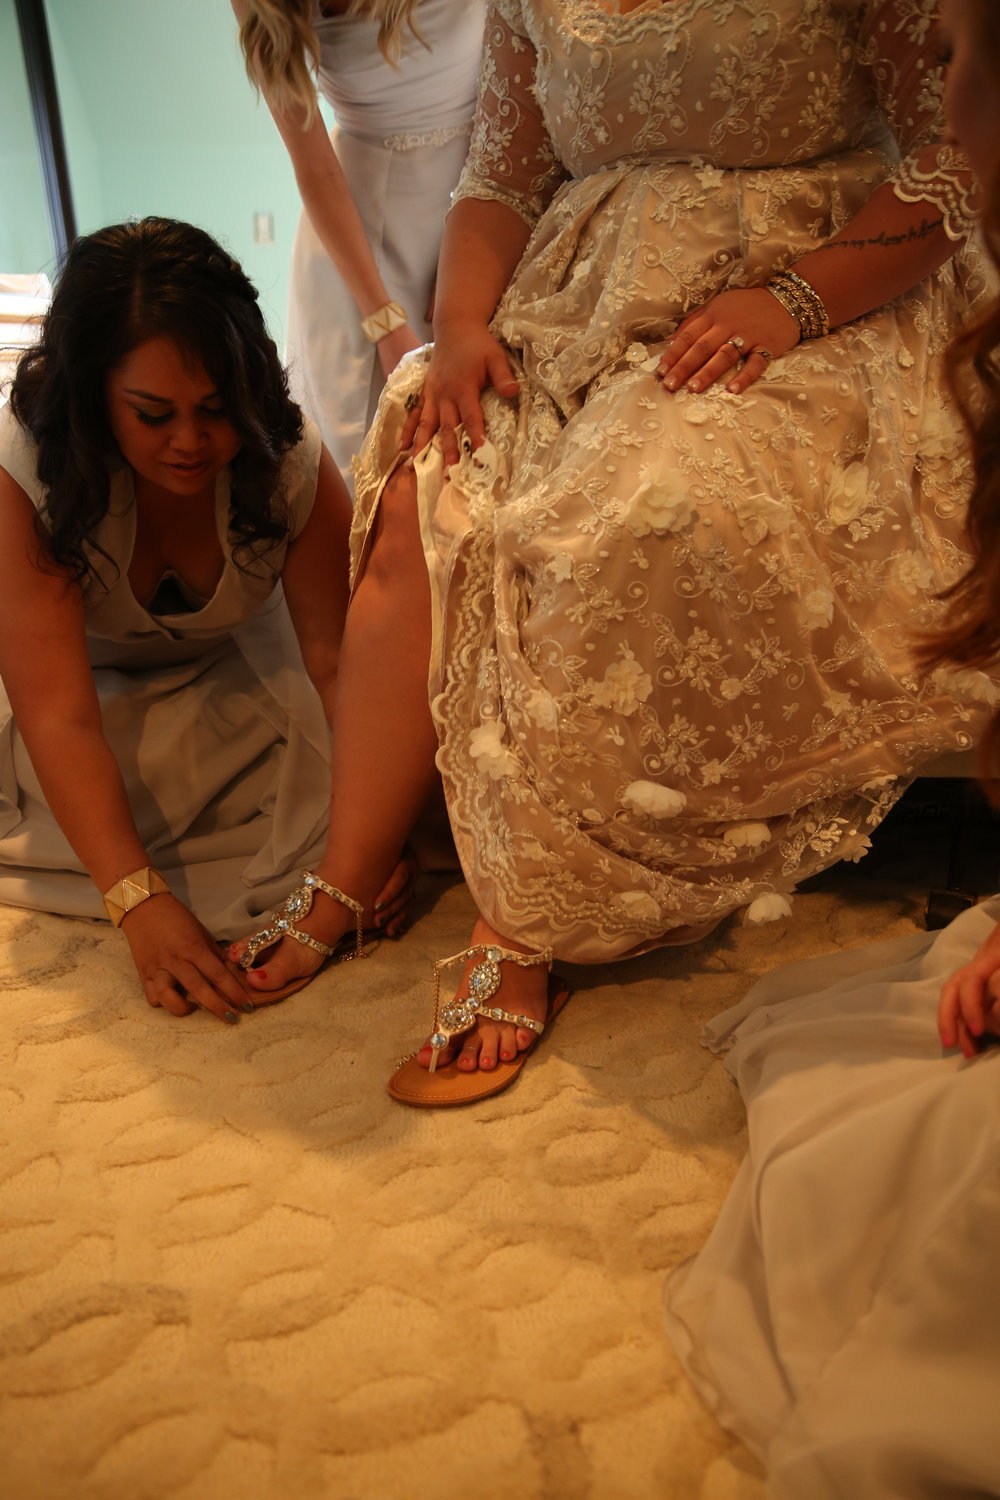 The brides bridesmaids helping her put on her wedding shoes for her big wedding day in Murrieta California.